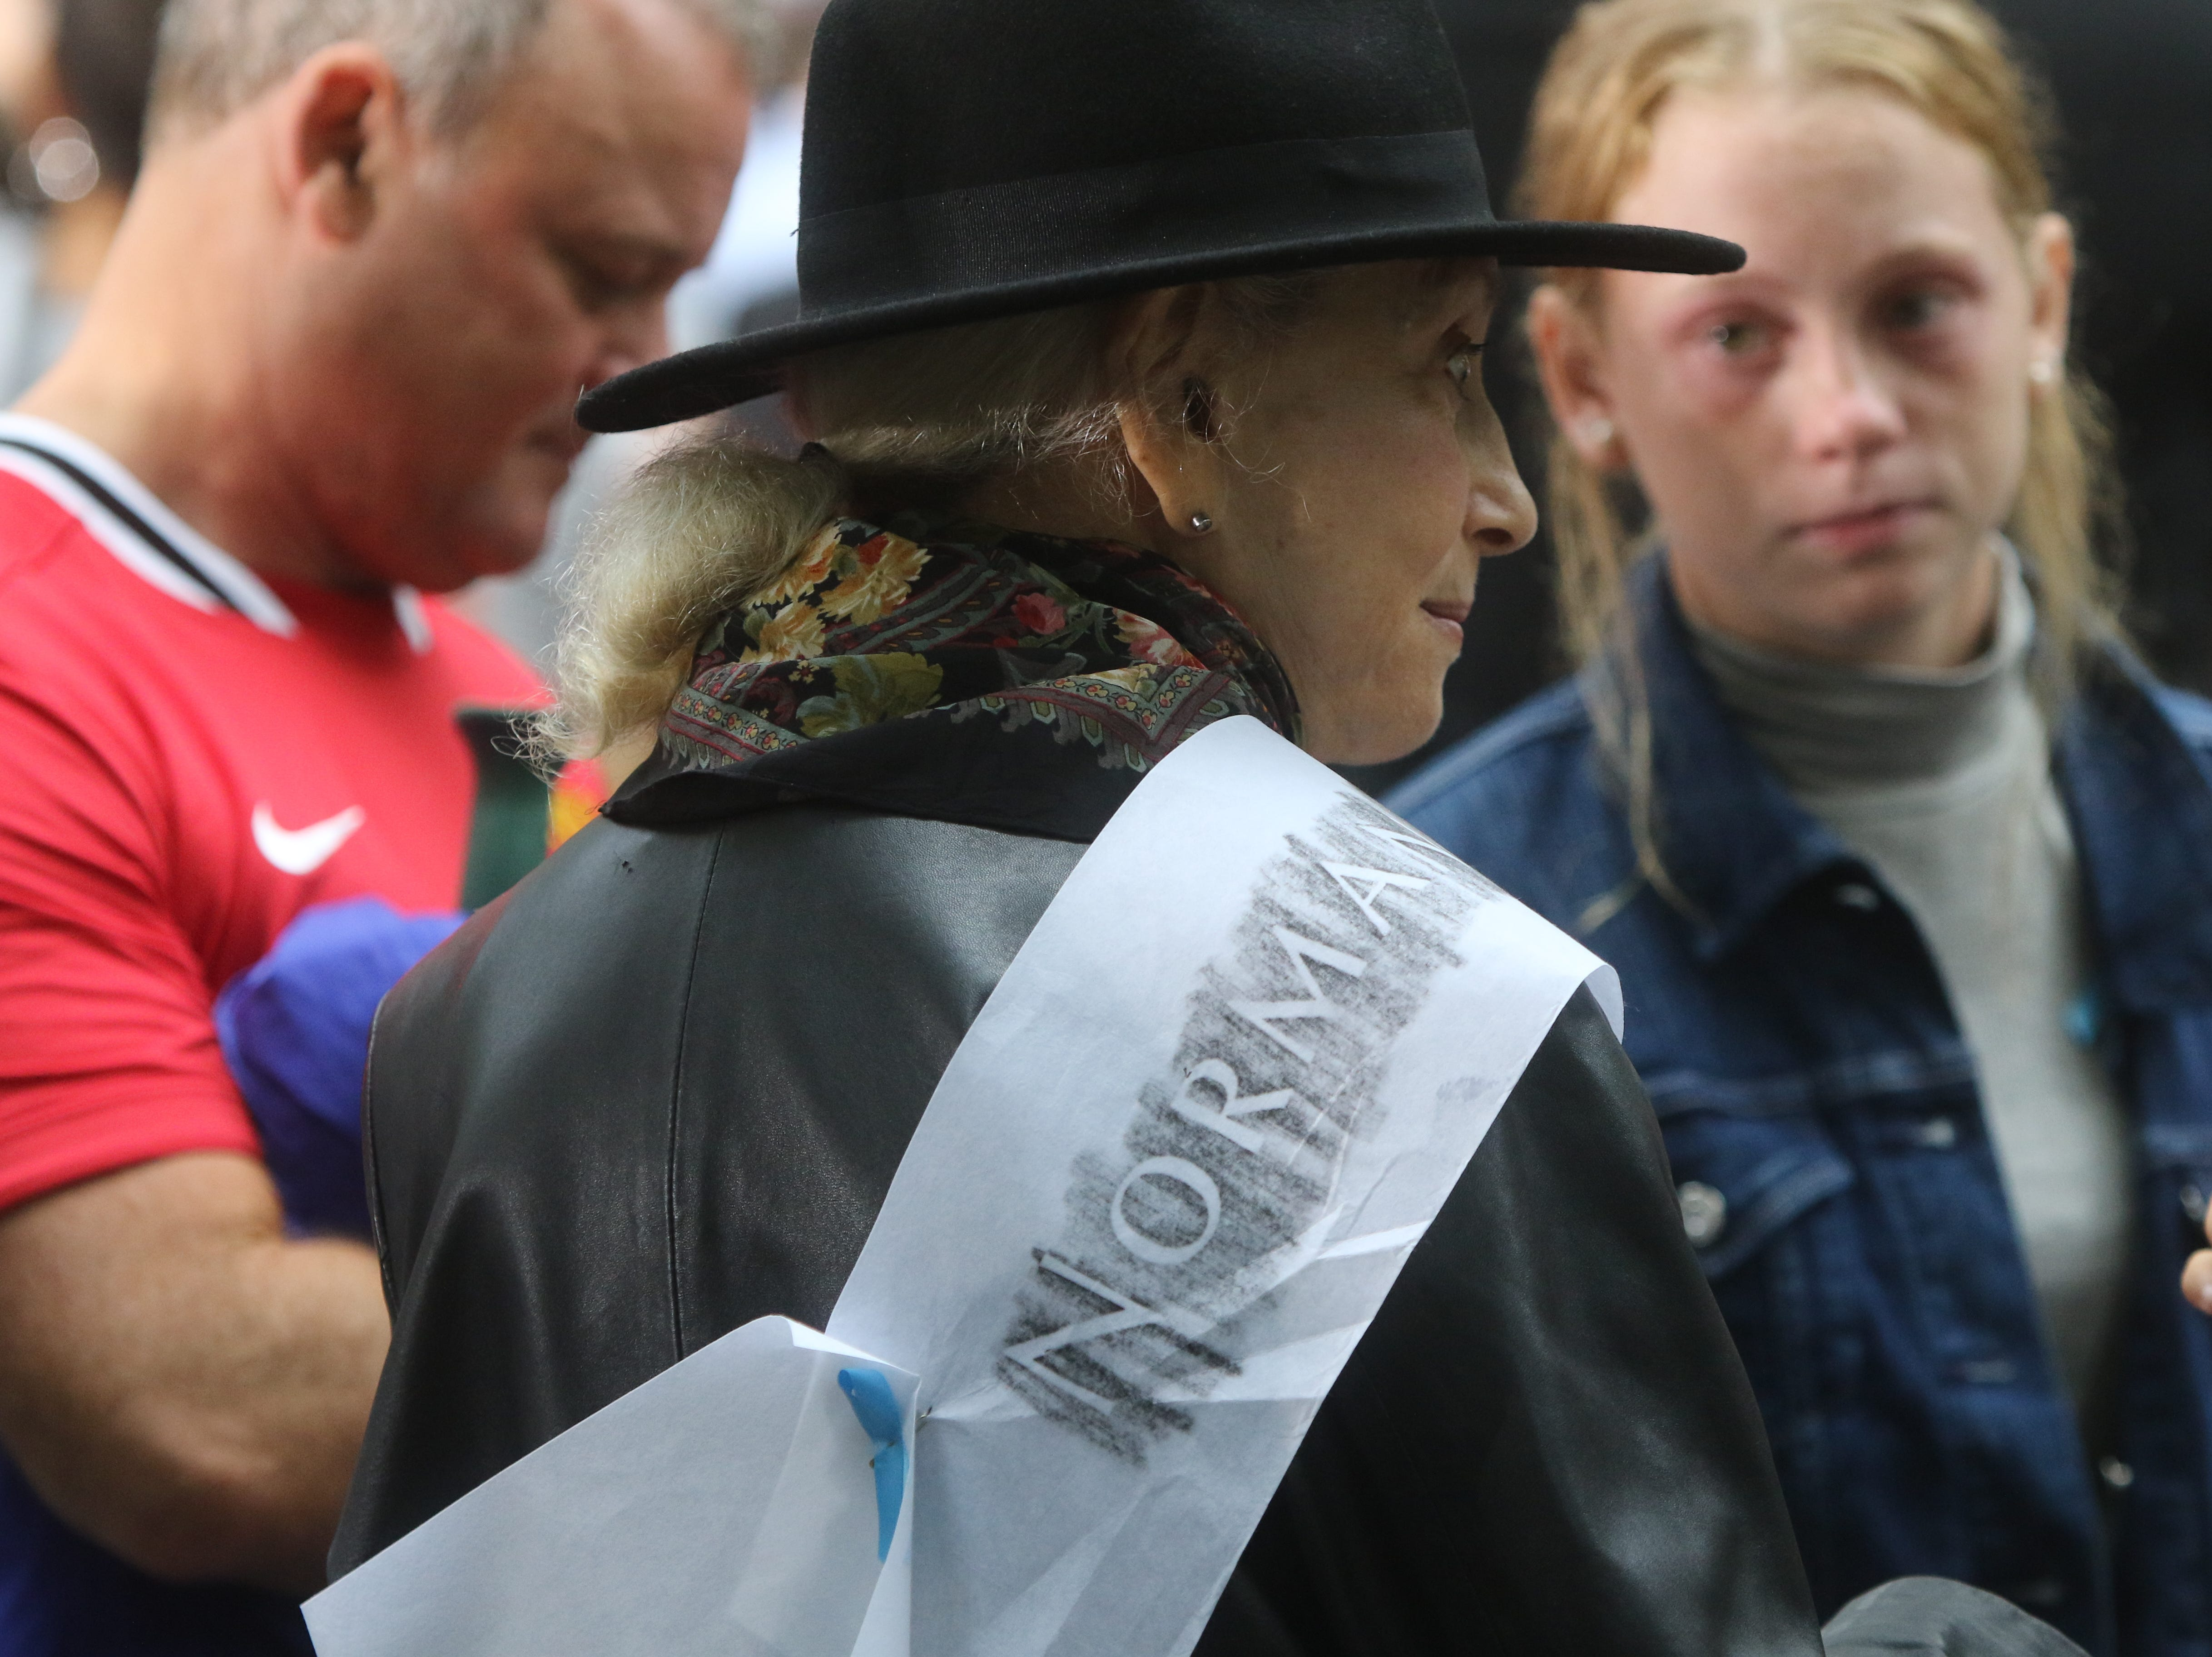 Ann Rossener drapes an etching with her son's name during the ceremonies at the National September 11 Memorial on Sept. 11, 2018 in New York.